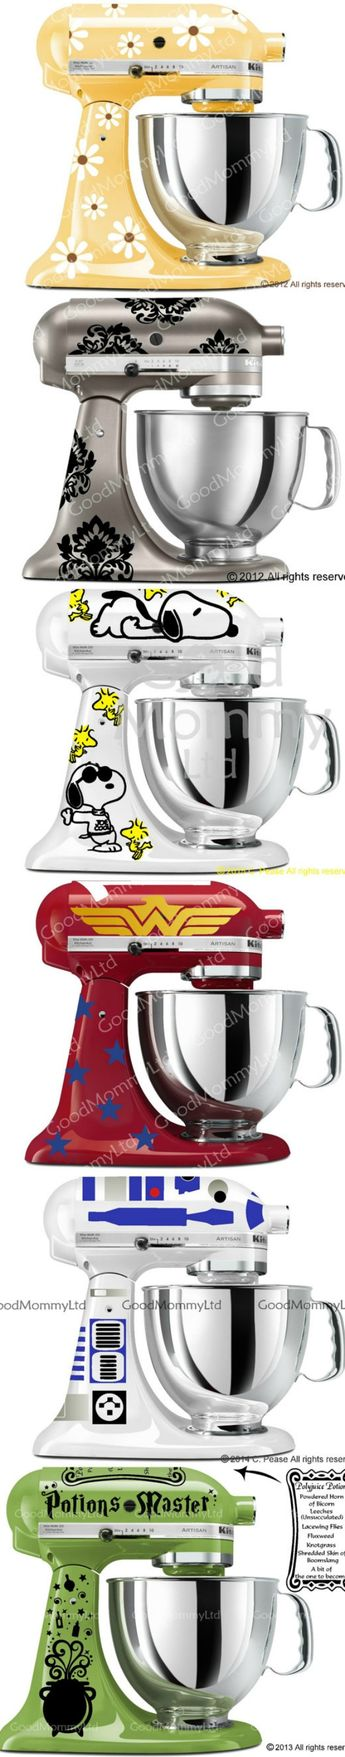 Kitchen Aid Mixer decals - Customize and decorate your kitchen aid mixer with these super cute vinyl decals!